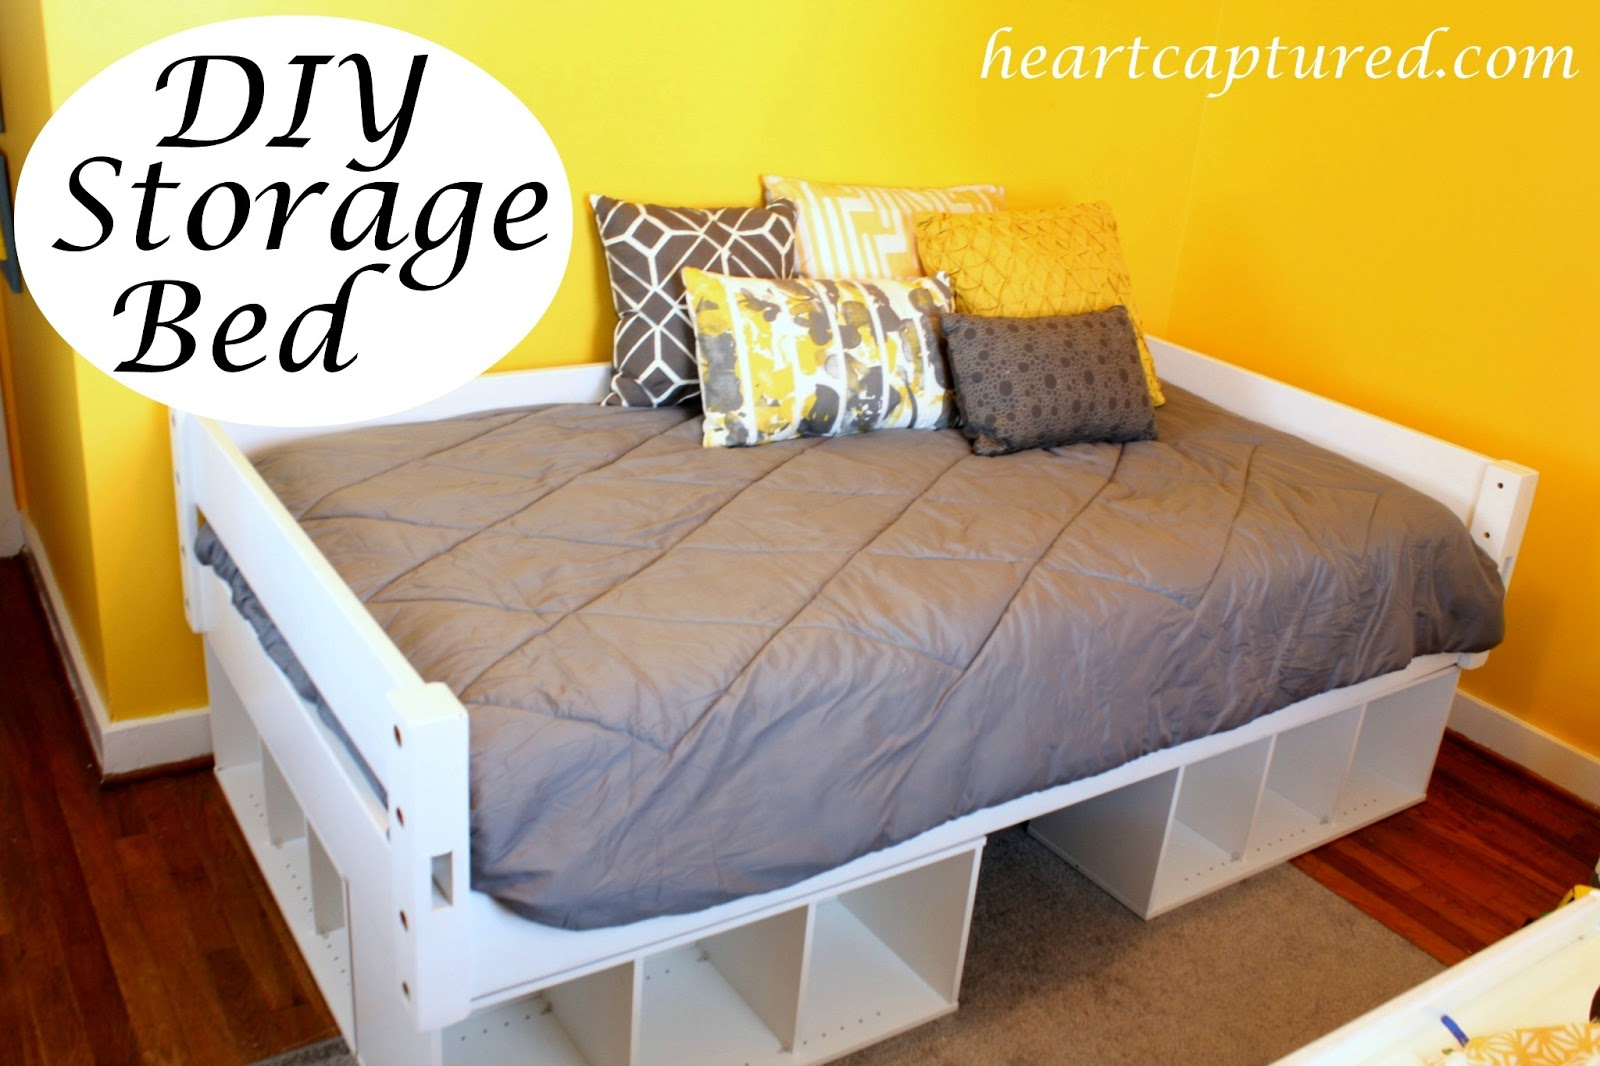 Diy twin platform bed frame - How To Build A Twin Size Platform Bed With Storage Vintage